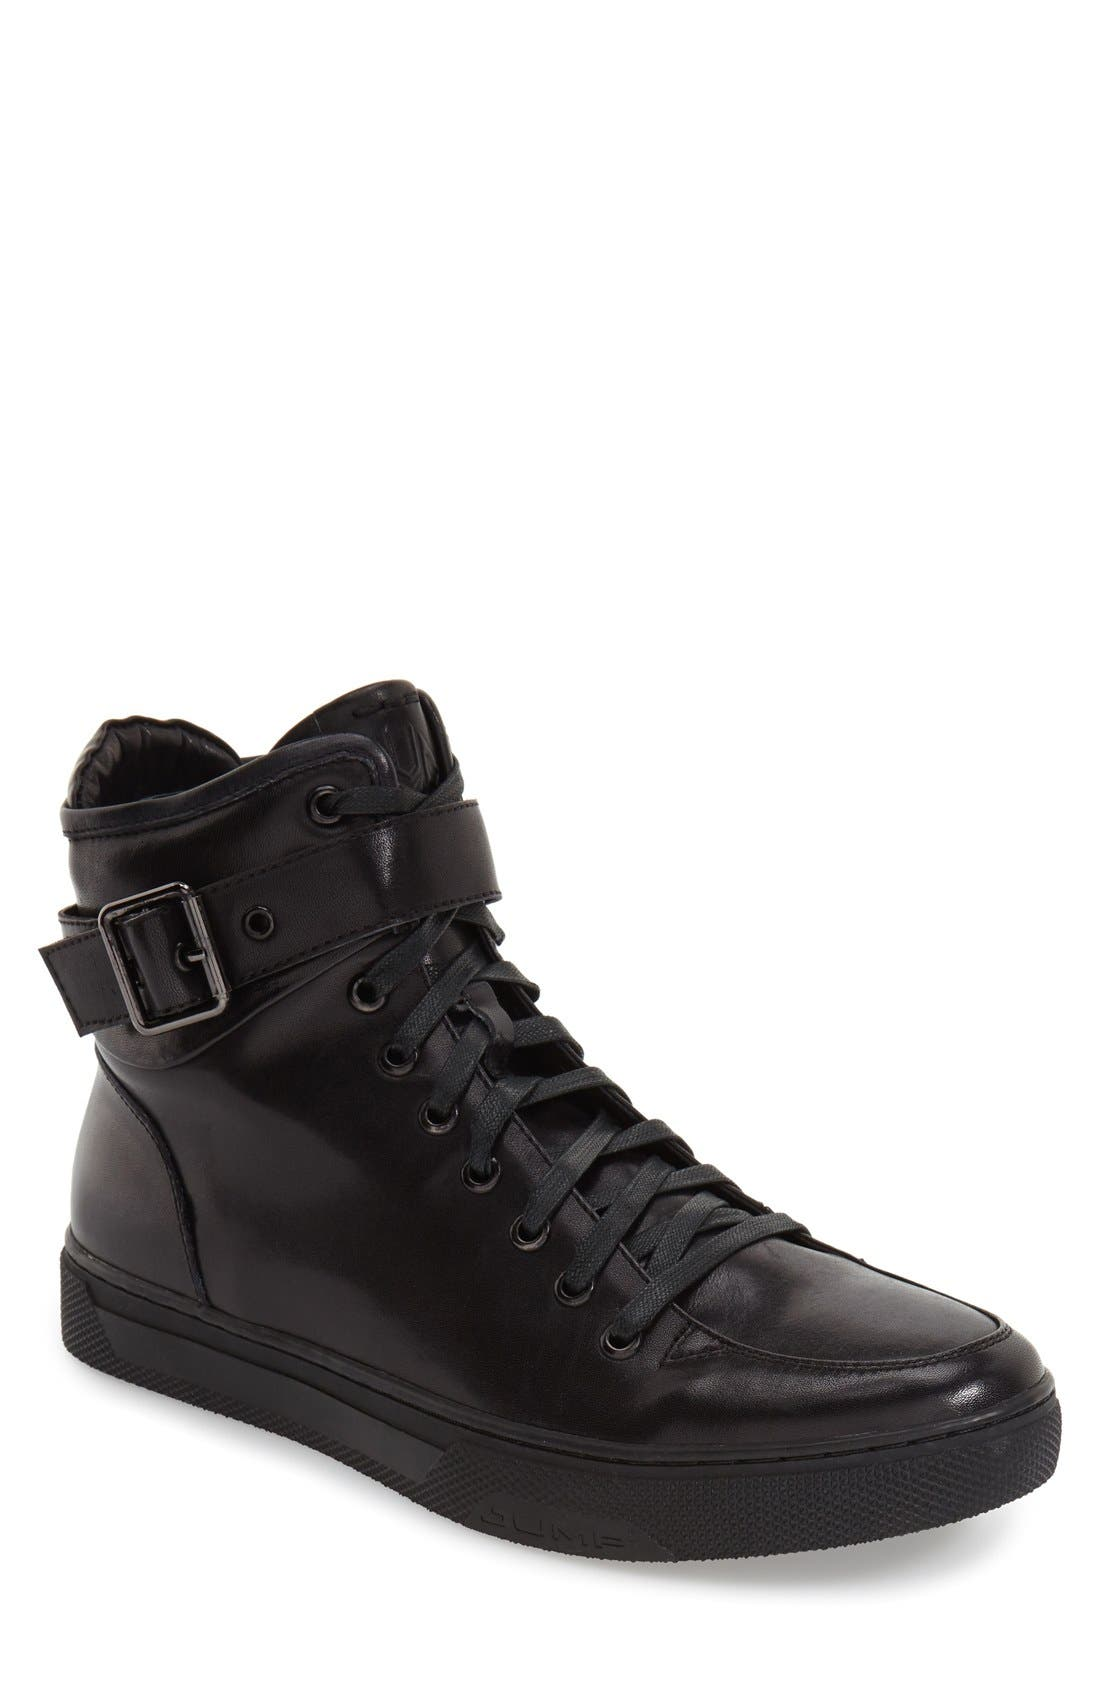 Sullivan High Top Sneaker,                         Main,                         color, BLACK LEATHER